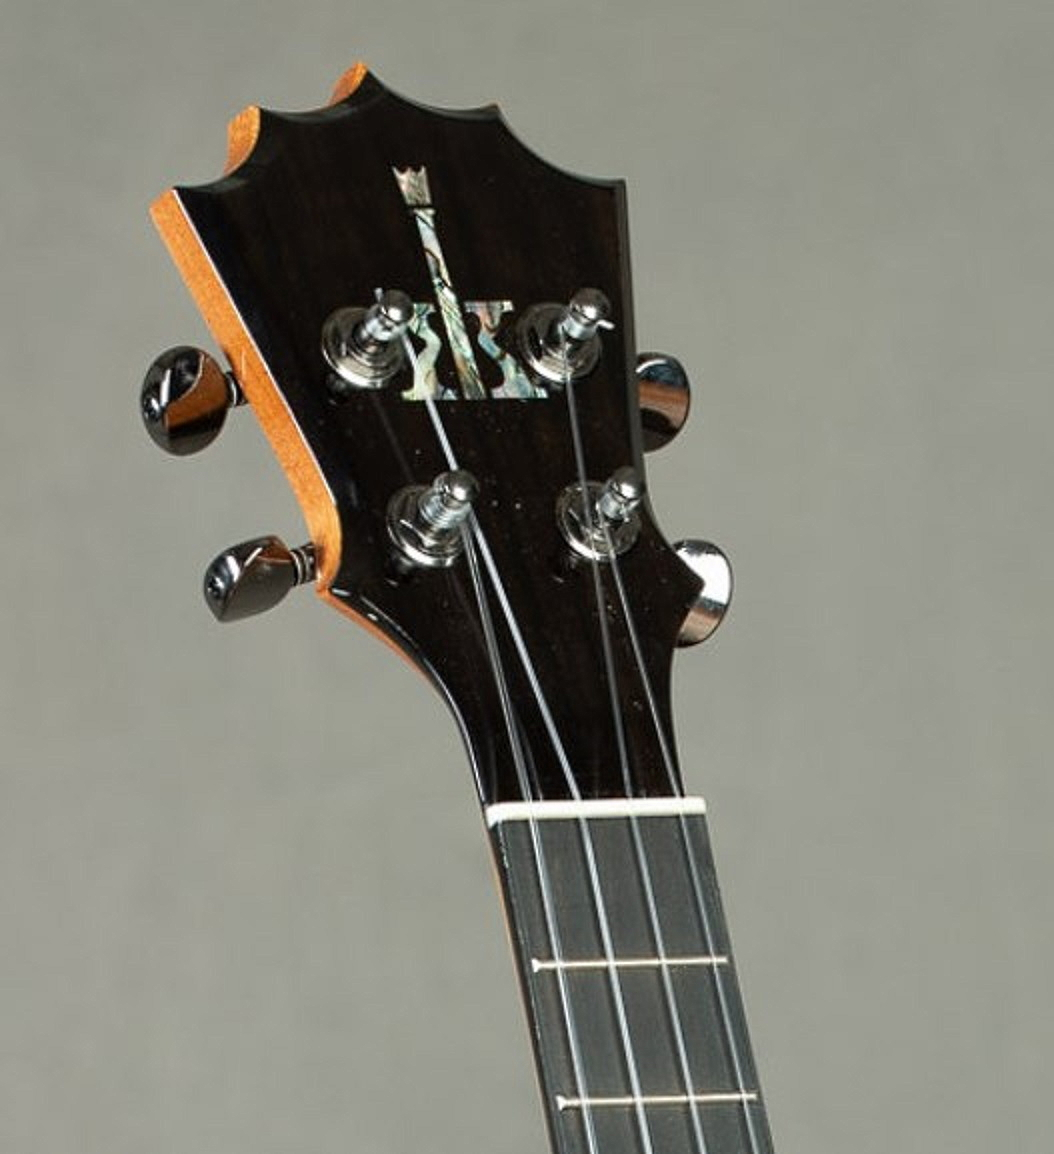 Visual Appearances of Headstocks-ktm-25-jpg